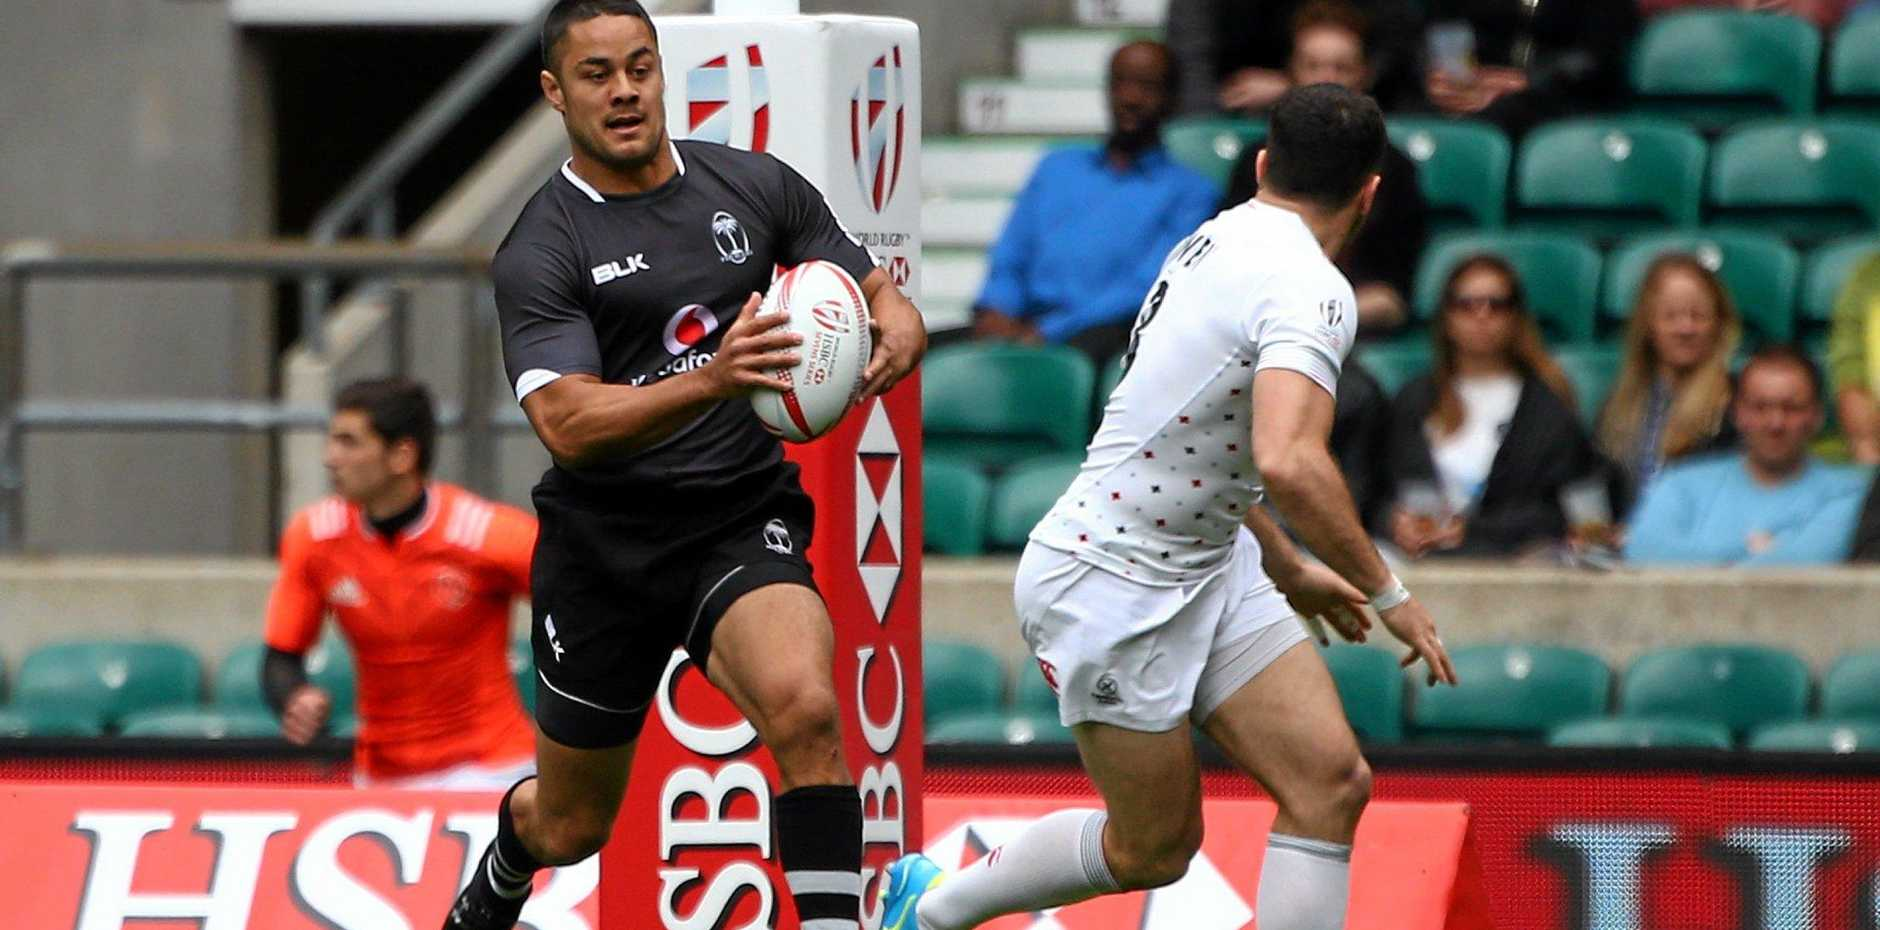 TOUGH START: Jarryd Hayne in action for Fiji during the pool round match against England.